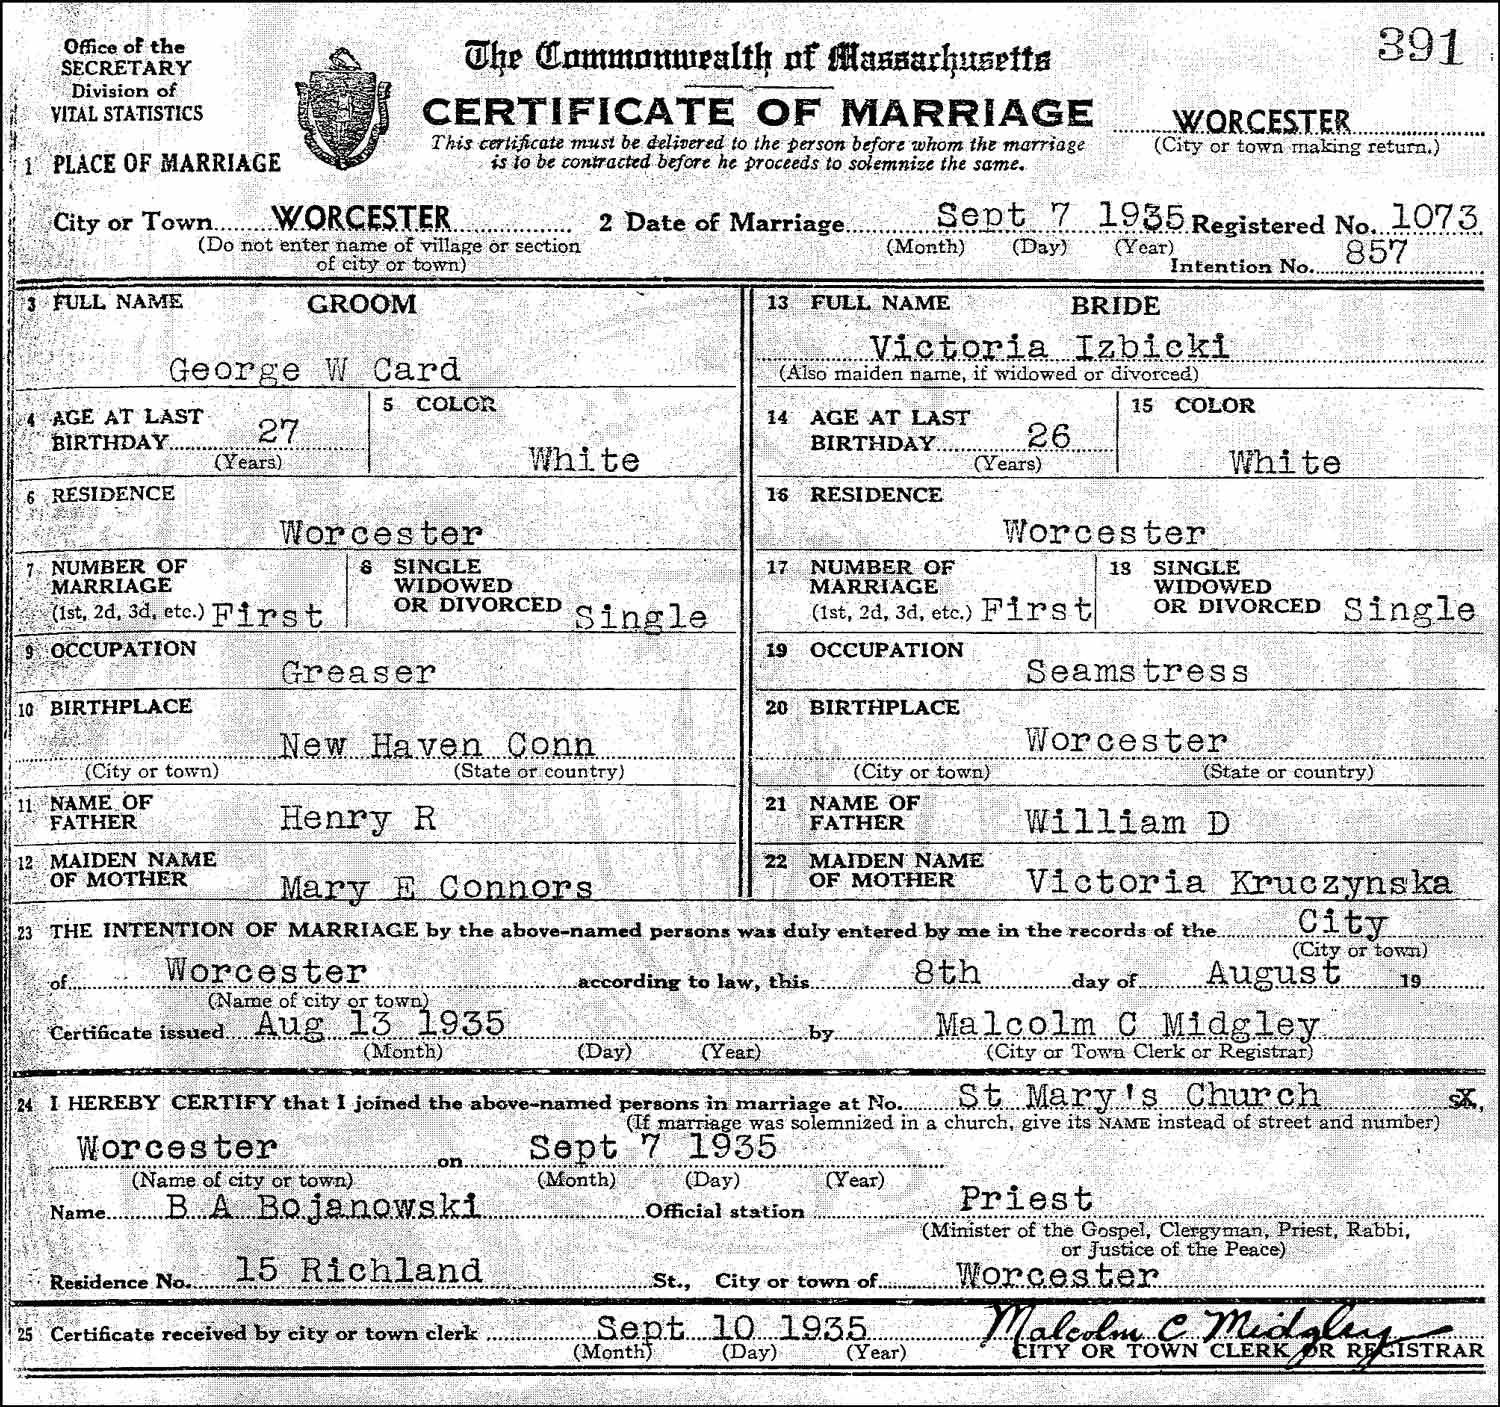 The Marriage Record of George W. Card and Victoria Izbicki – 1935